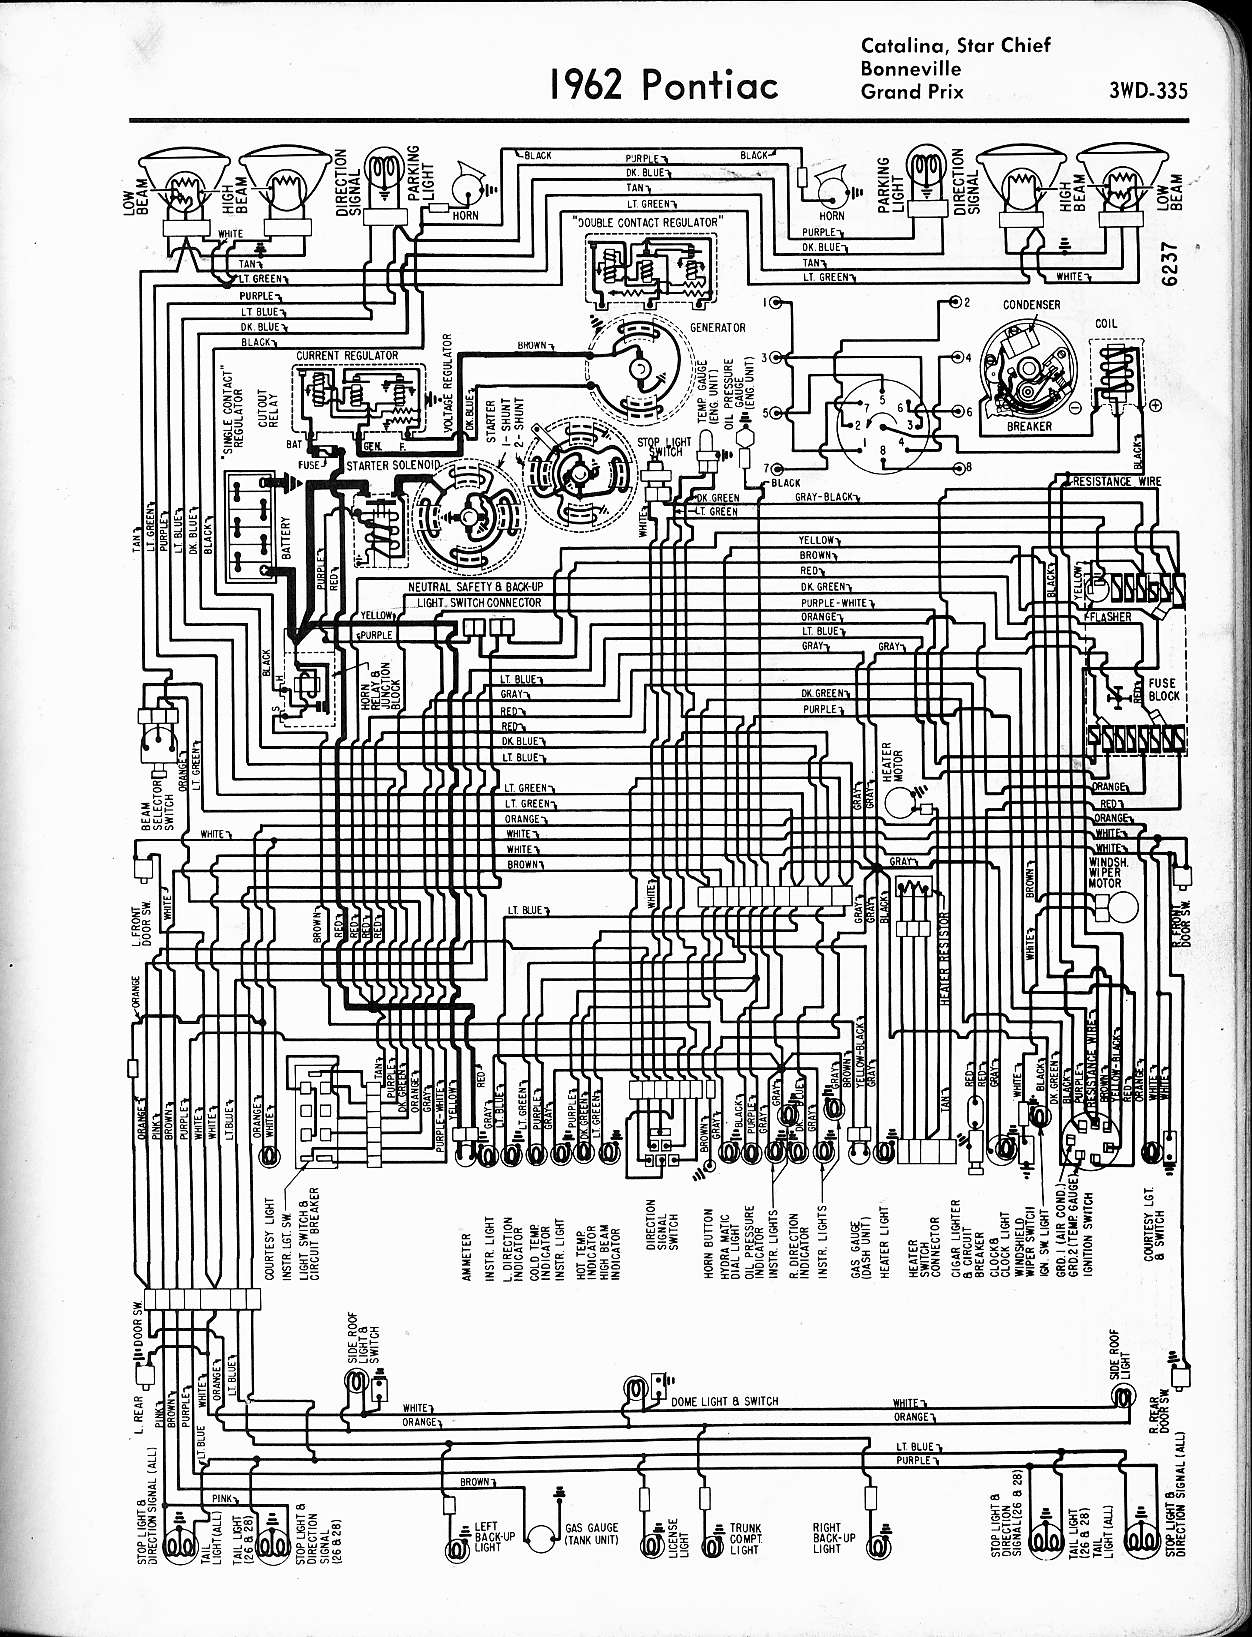 2002 Pontiac Grand Prix Starter Wiring Diagram,Grand.Free Download ...